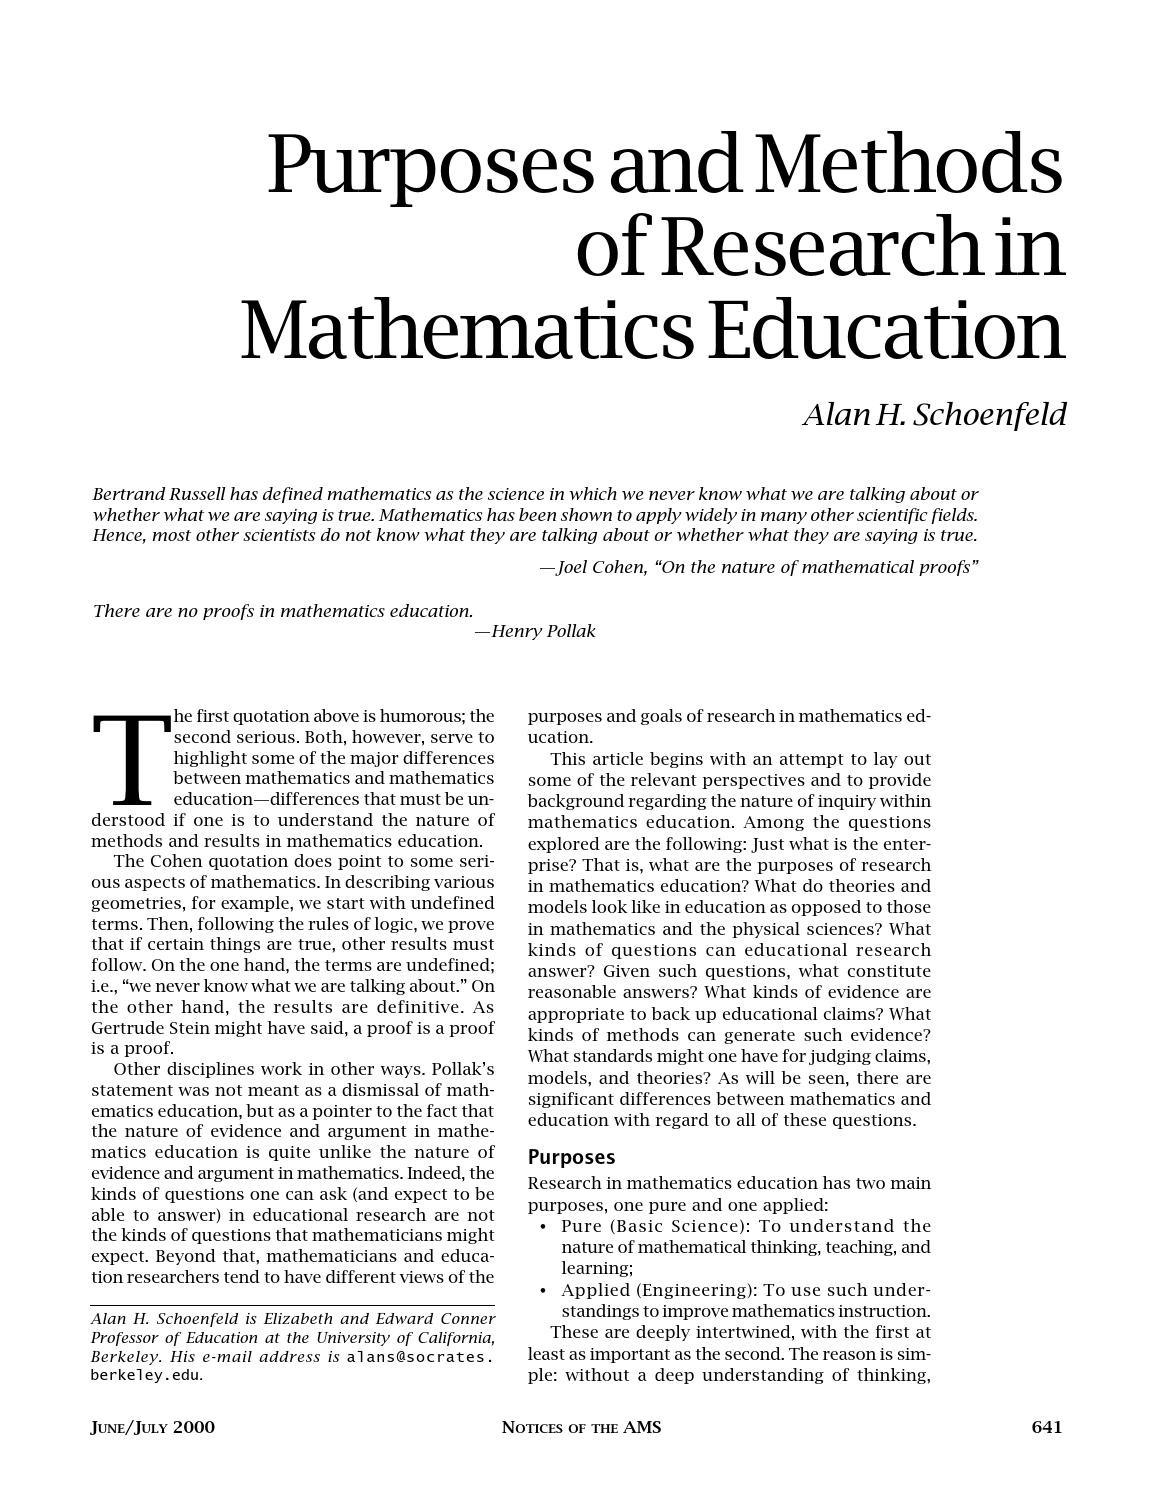 Purposes and methods inmath education by Heurística